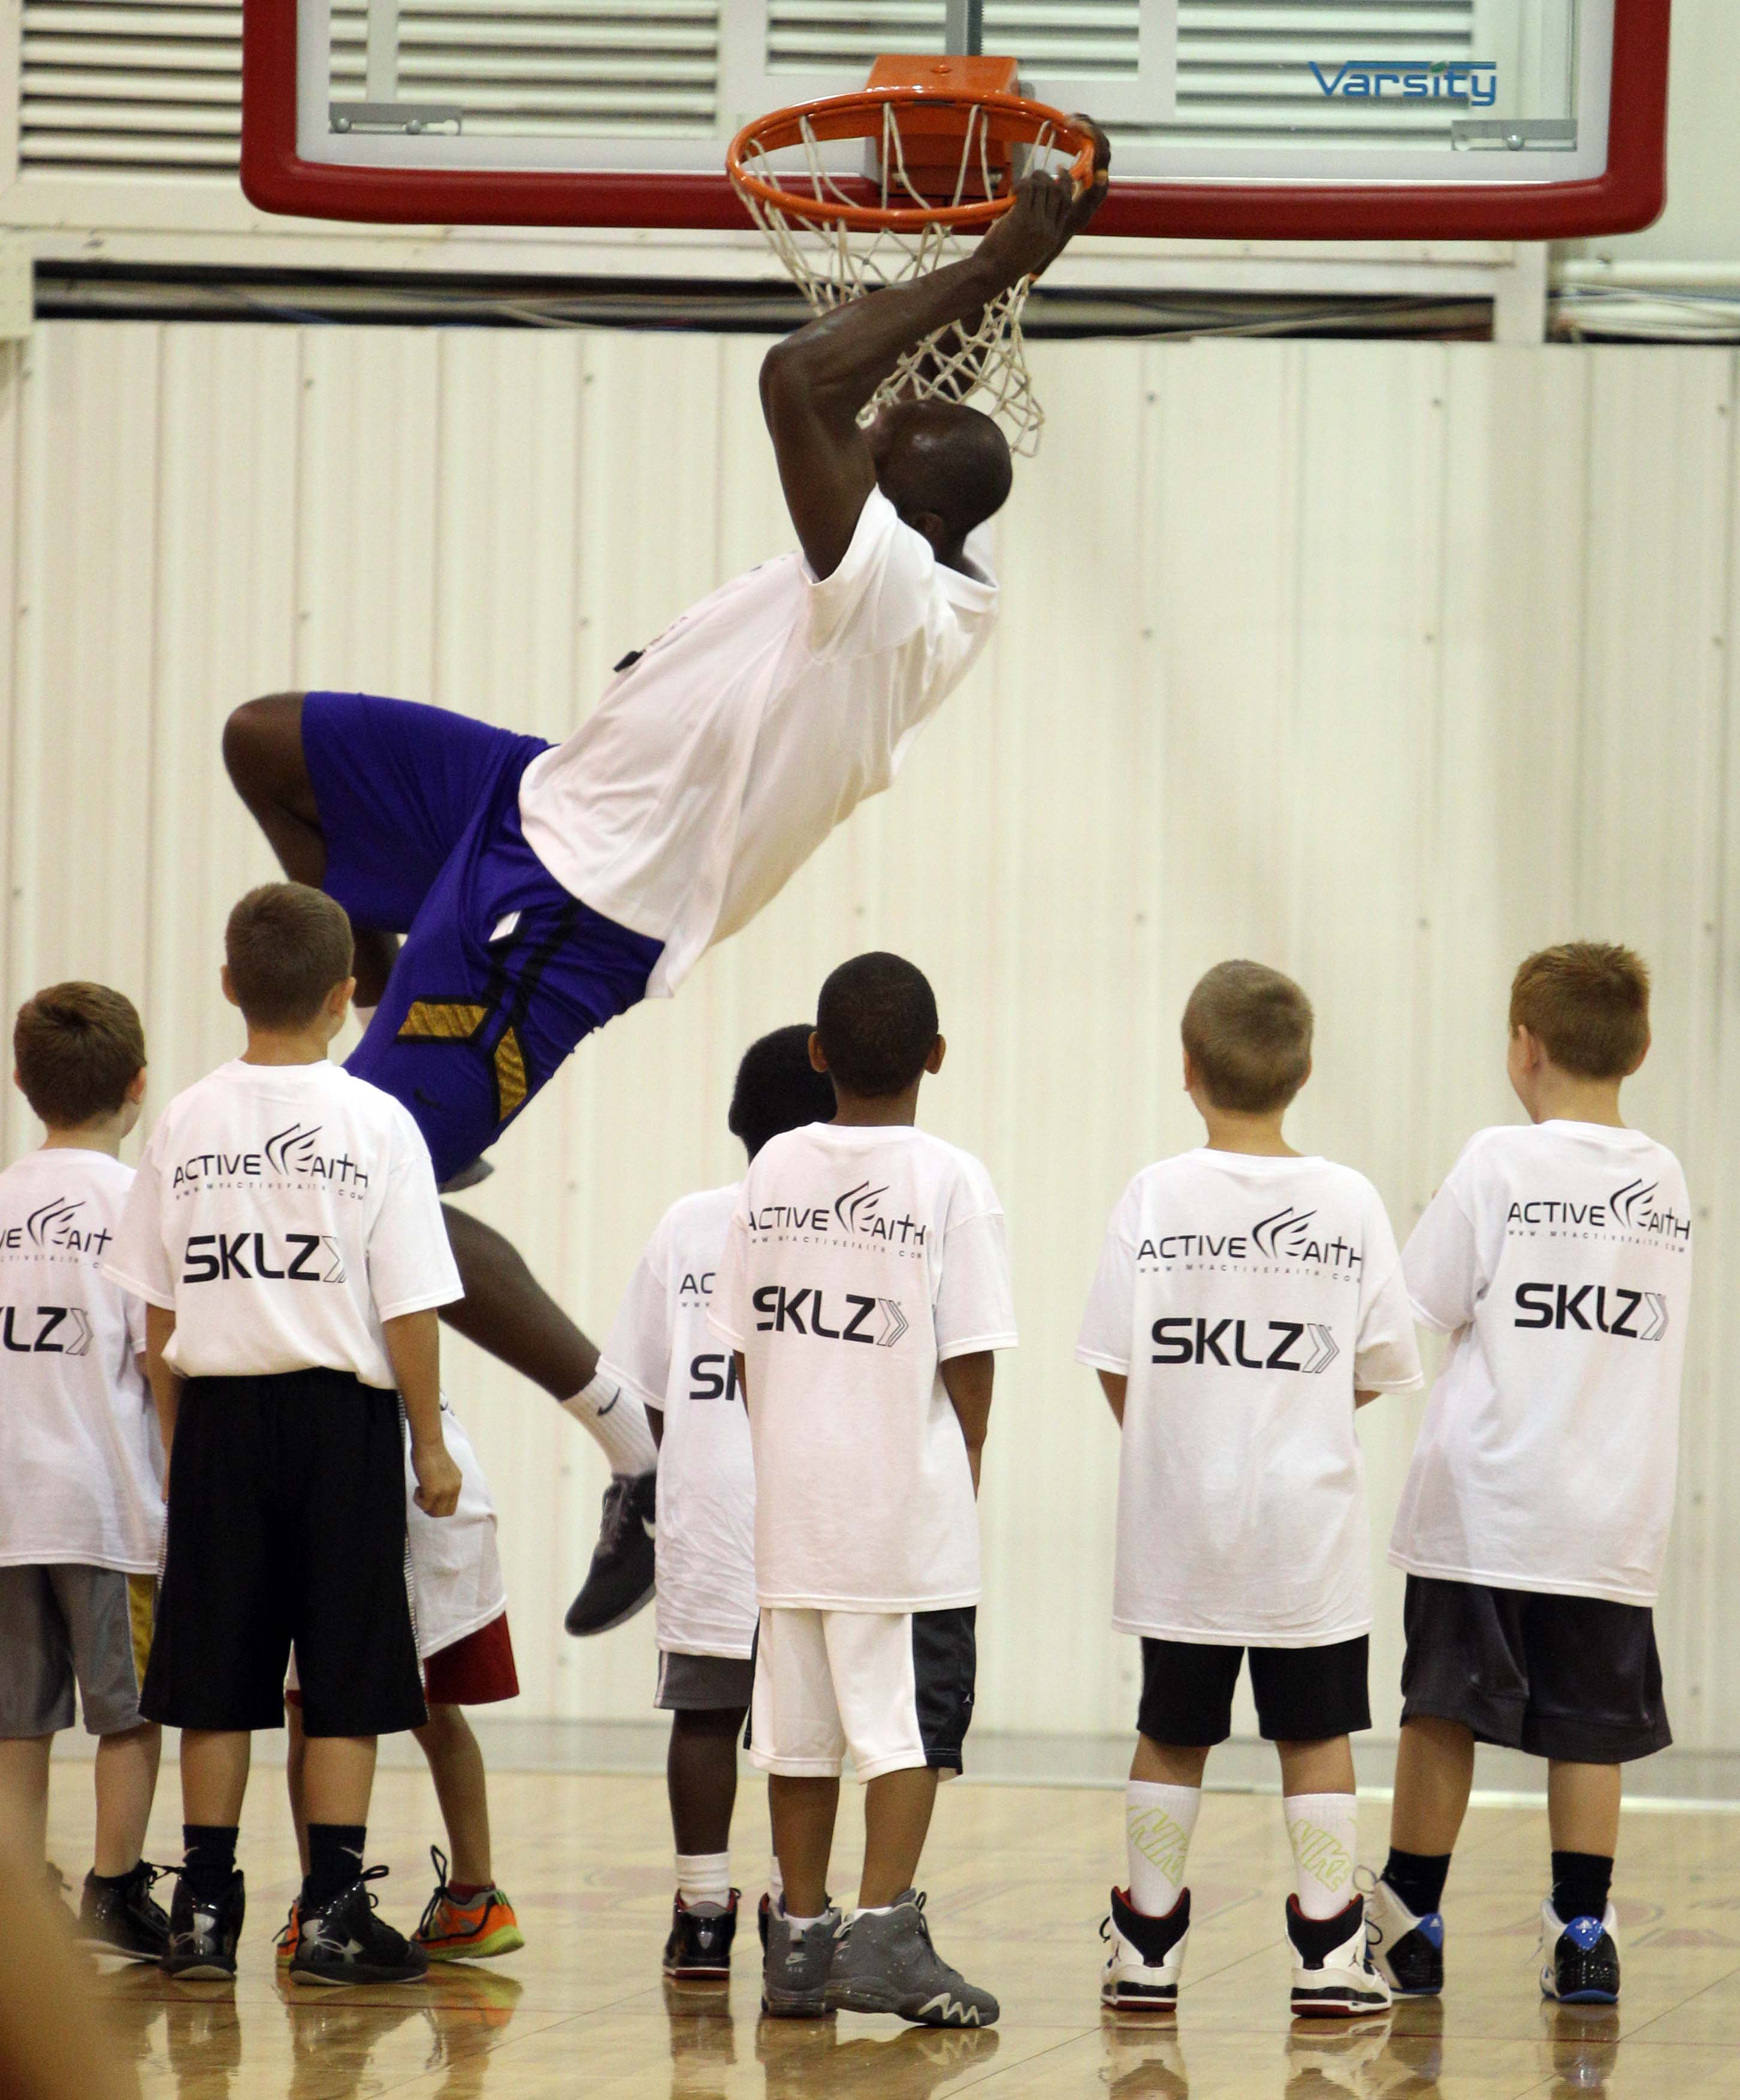 Anthony Tolliver has some fun with the youngsters at his camp at The Courts as he dunks on an 8 foot rim.